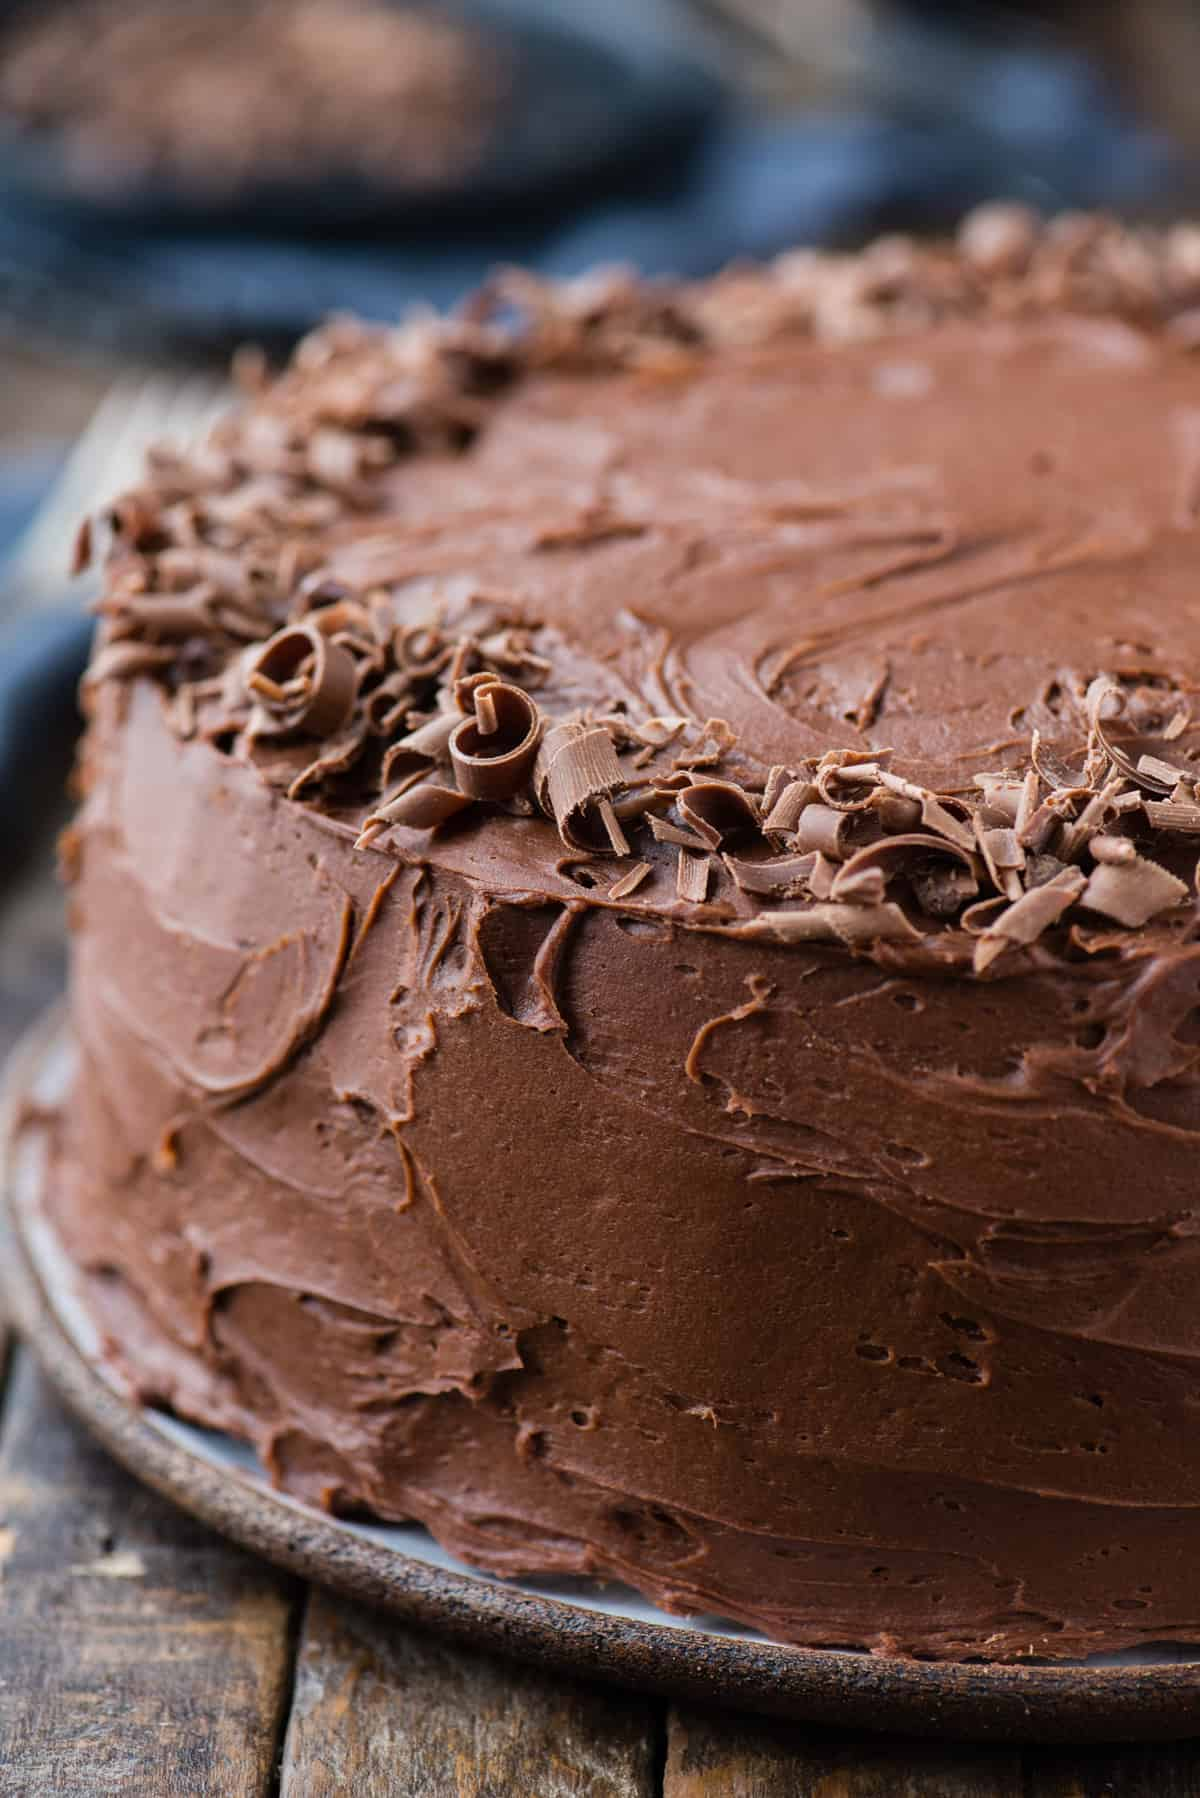 close up of homemade chocolate cake with chocolate shavings sprinkled around the edge of the cake